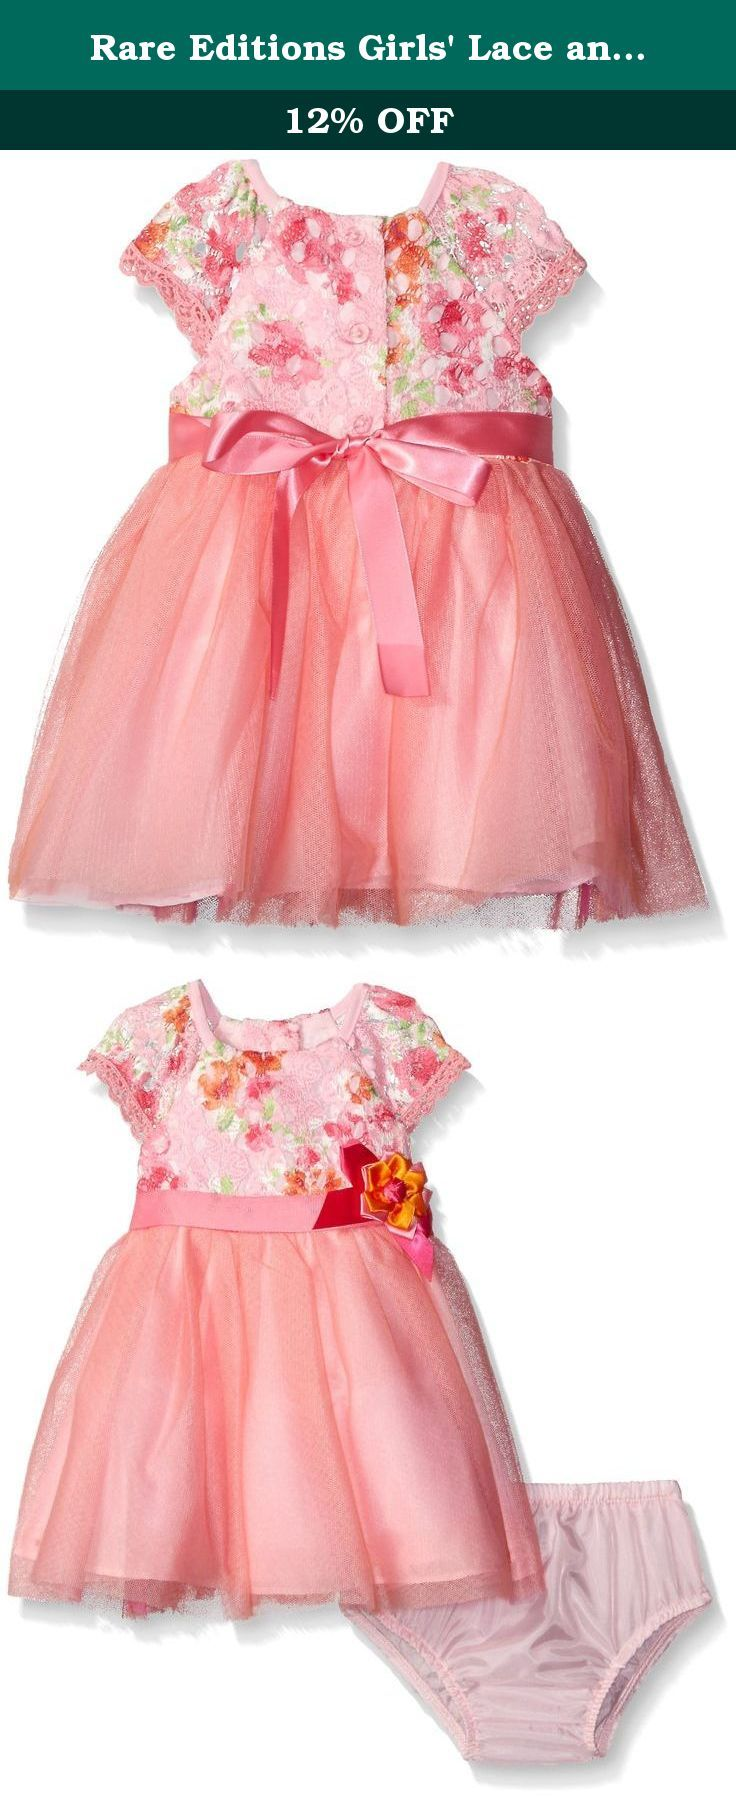 Rare Editions Girls' Lace and Mesh Special Occasion Dress, Pink/Orange, 3 Months. Pink/orange lace bodice to pink mesh social dress with panty.